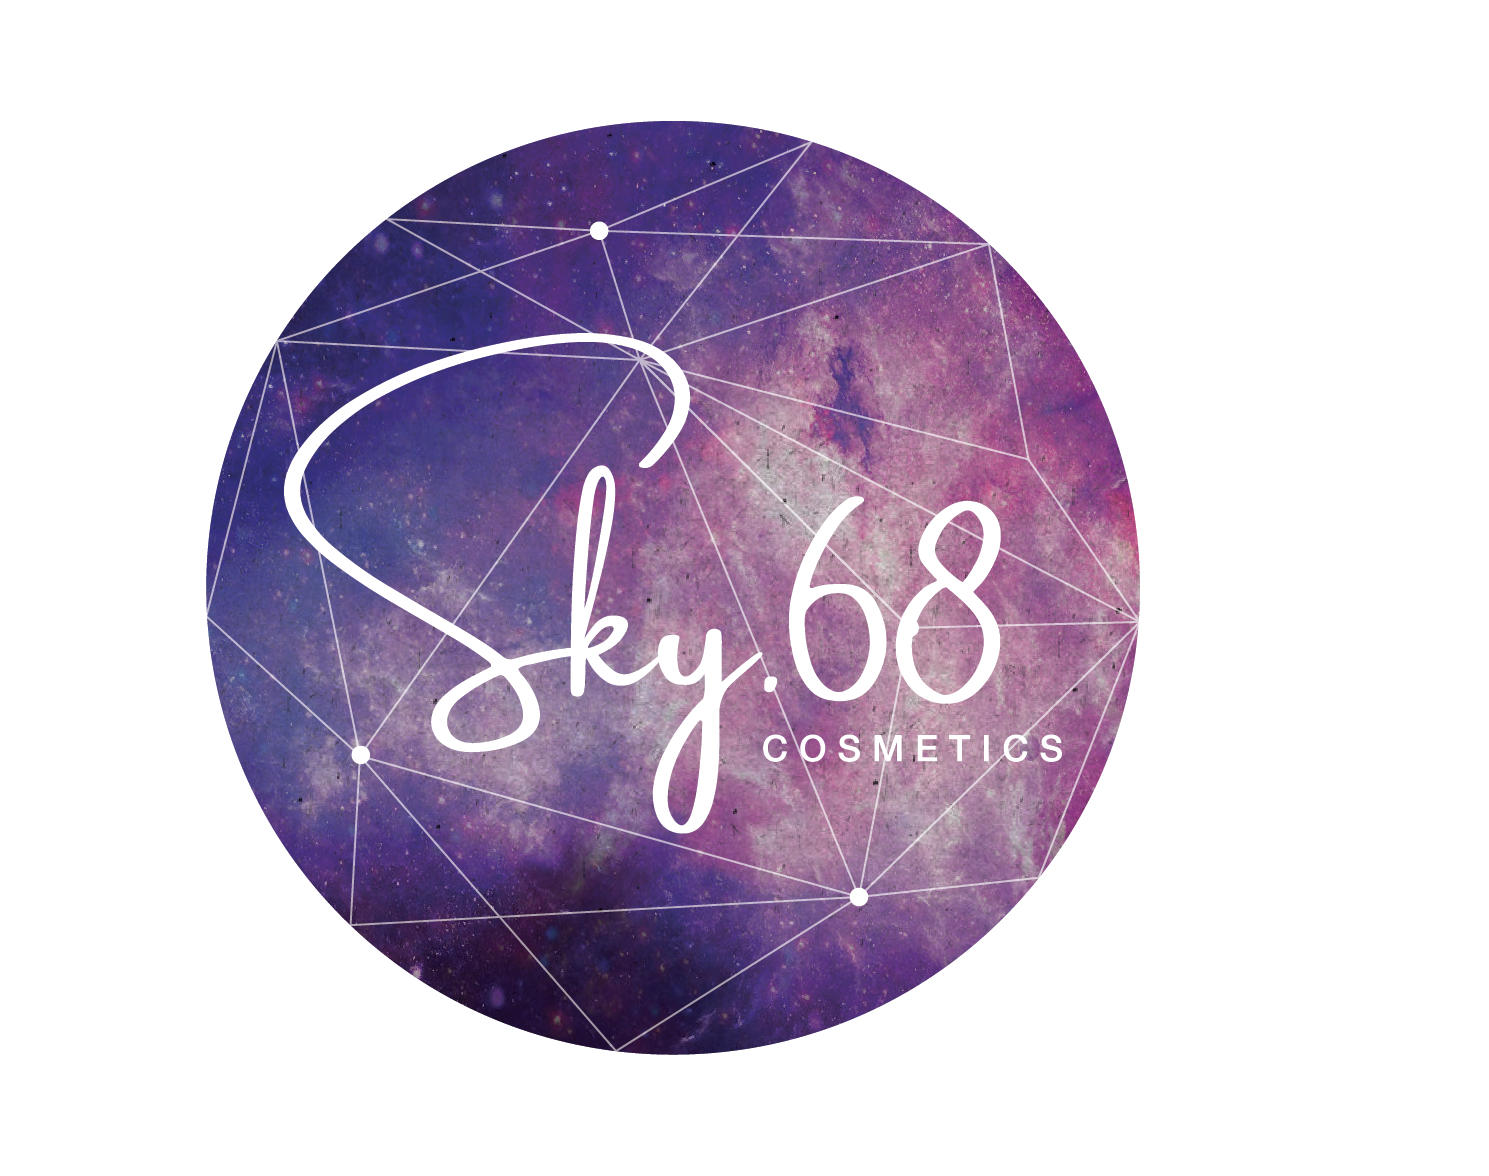 Sky68 Official Store